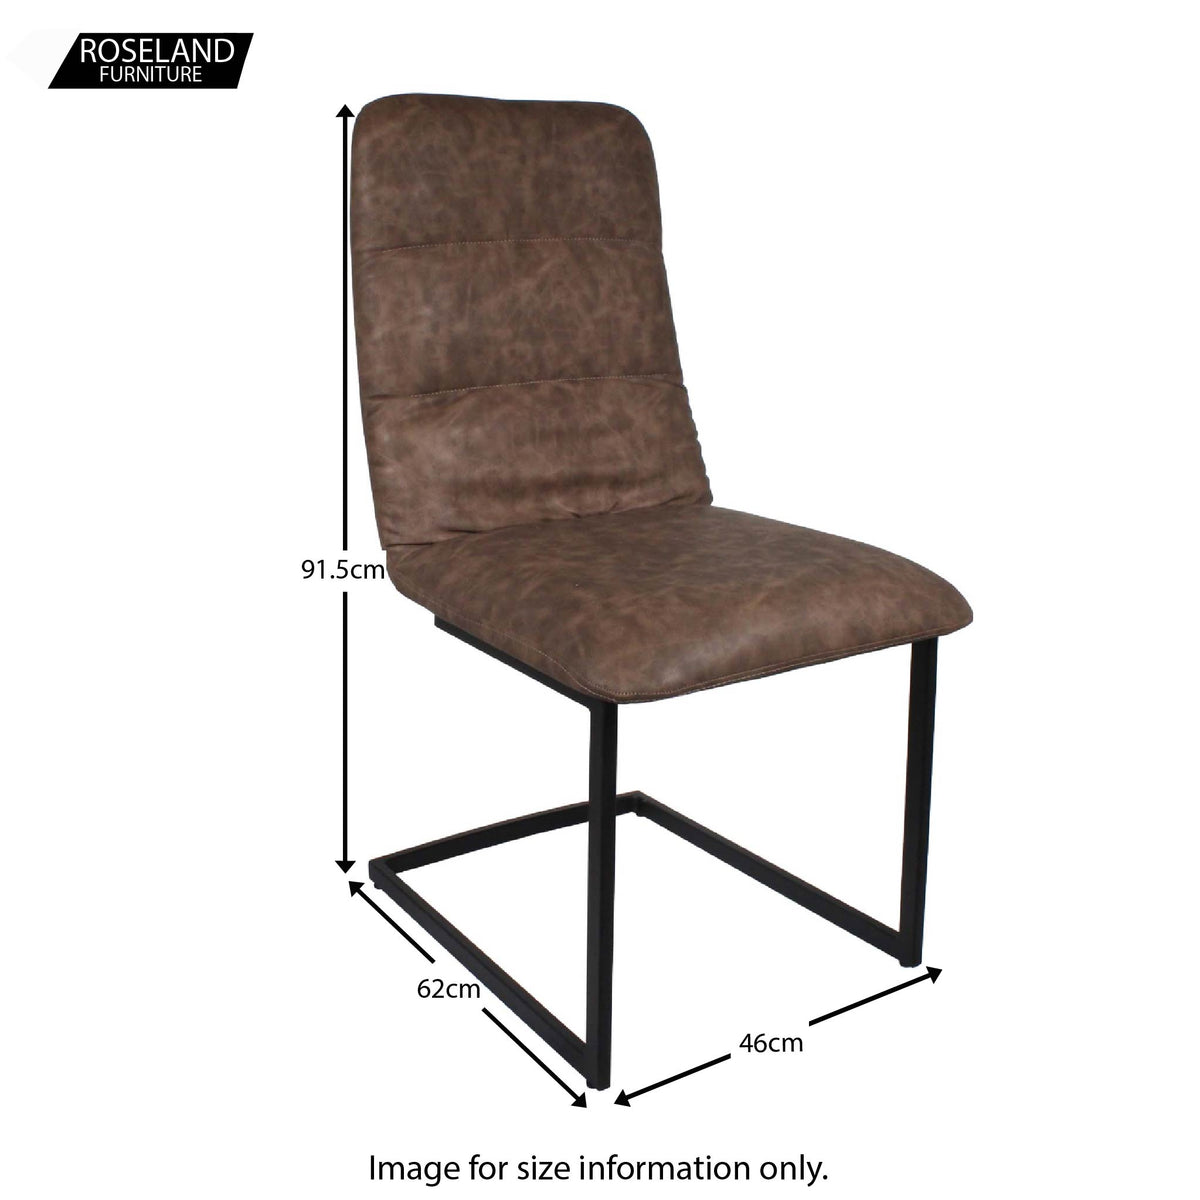 Dimensions for the Coffee Maitland Faux Leather Dining Chairs by Roseland Furniture